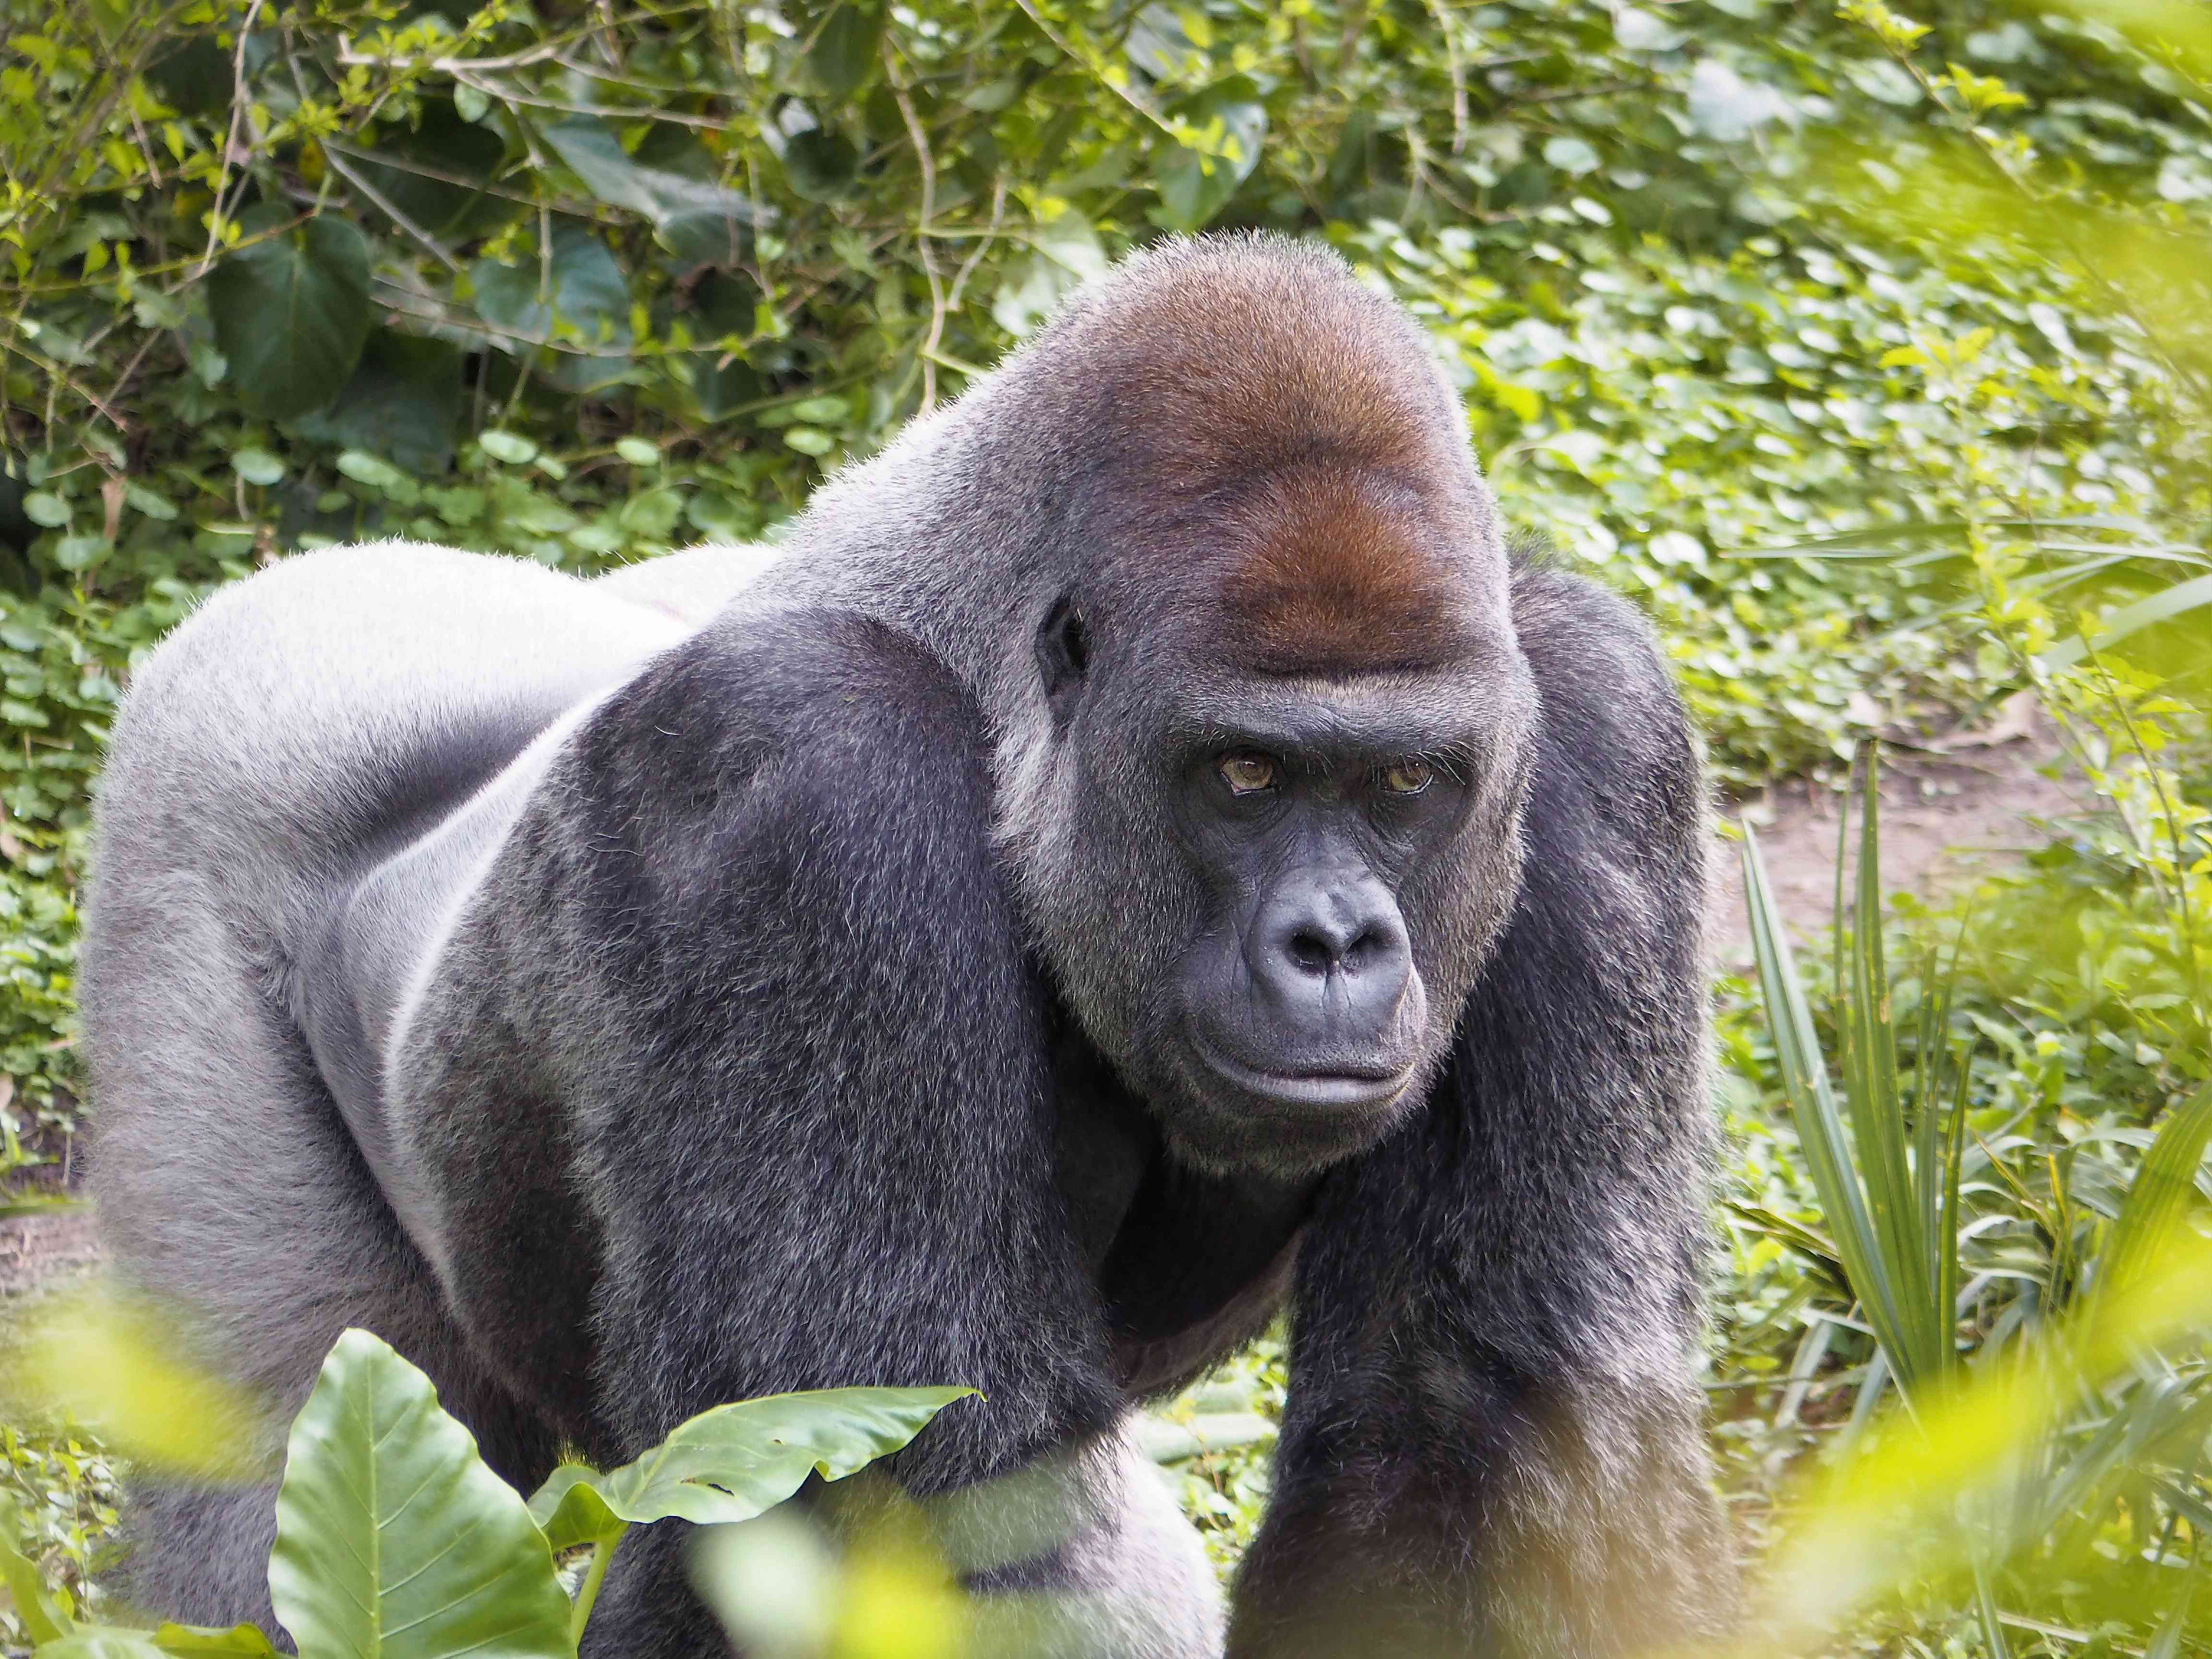 A gorilla walking around outside in a green setting.